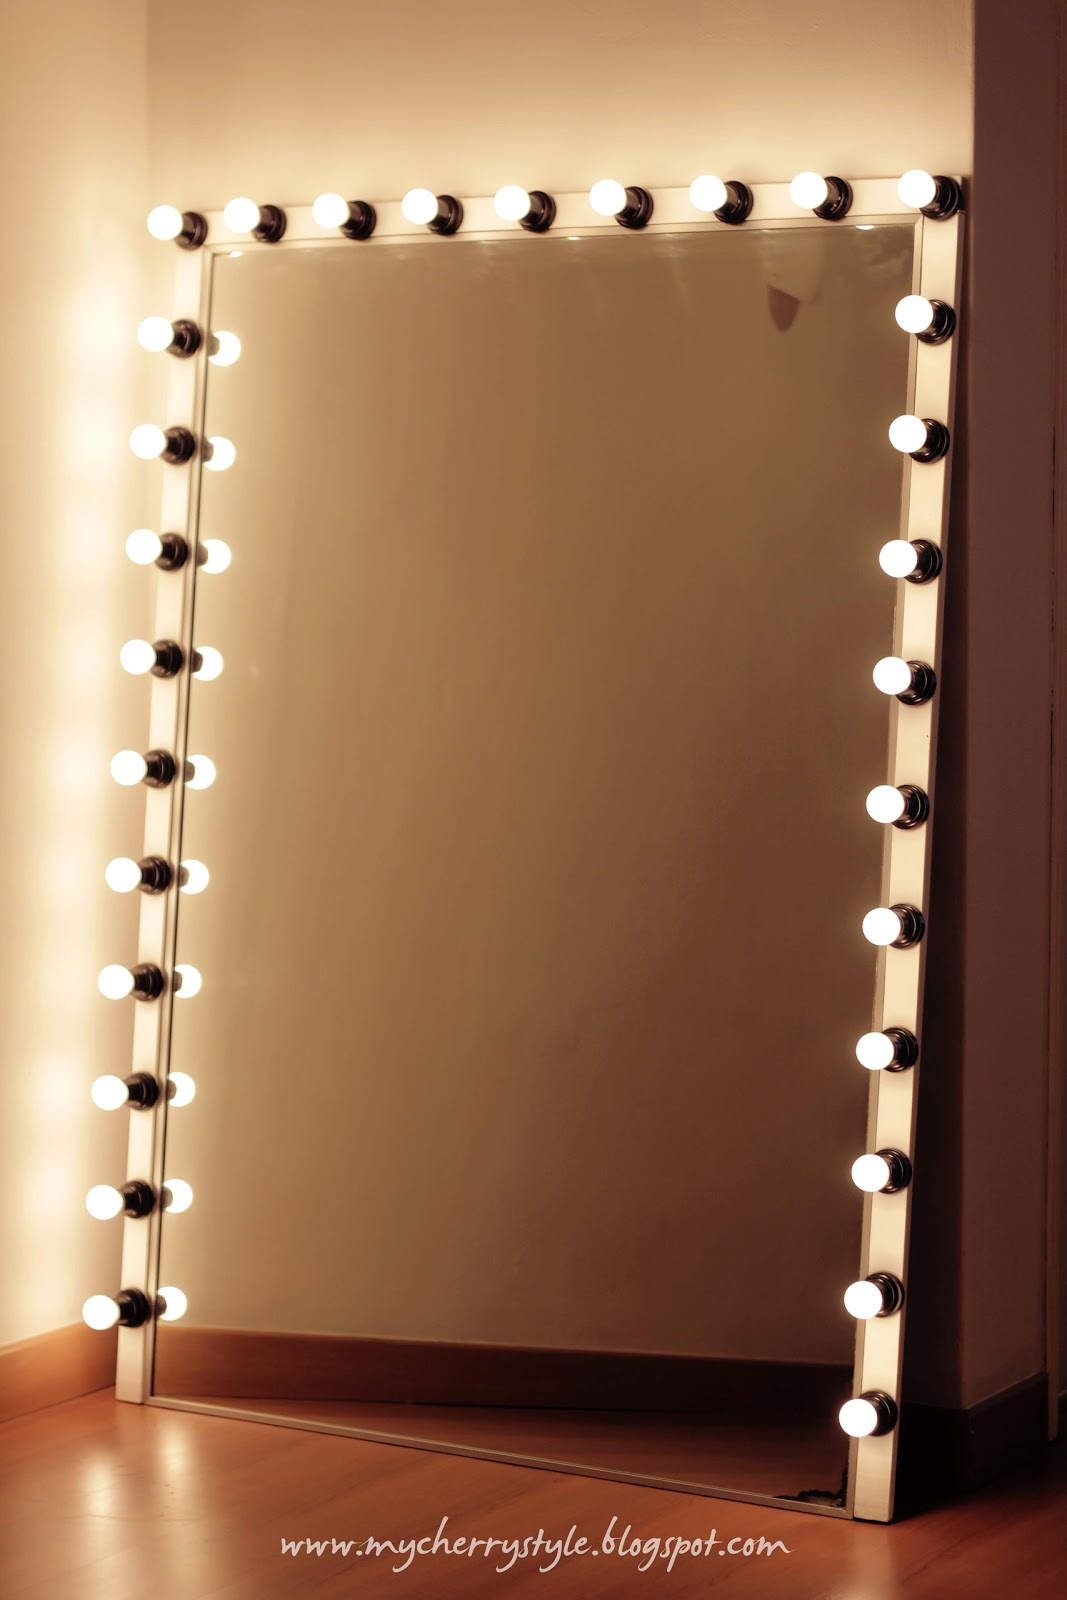 Hollywood Style Vanity Lights : DIY Hollywood-style mirror with lights! Tutorial from scratch. for real.